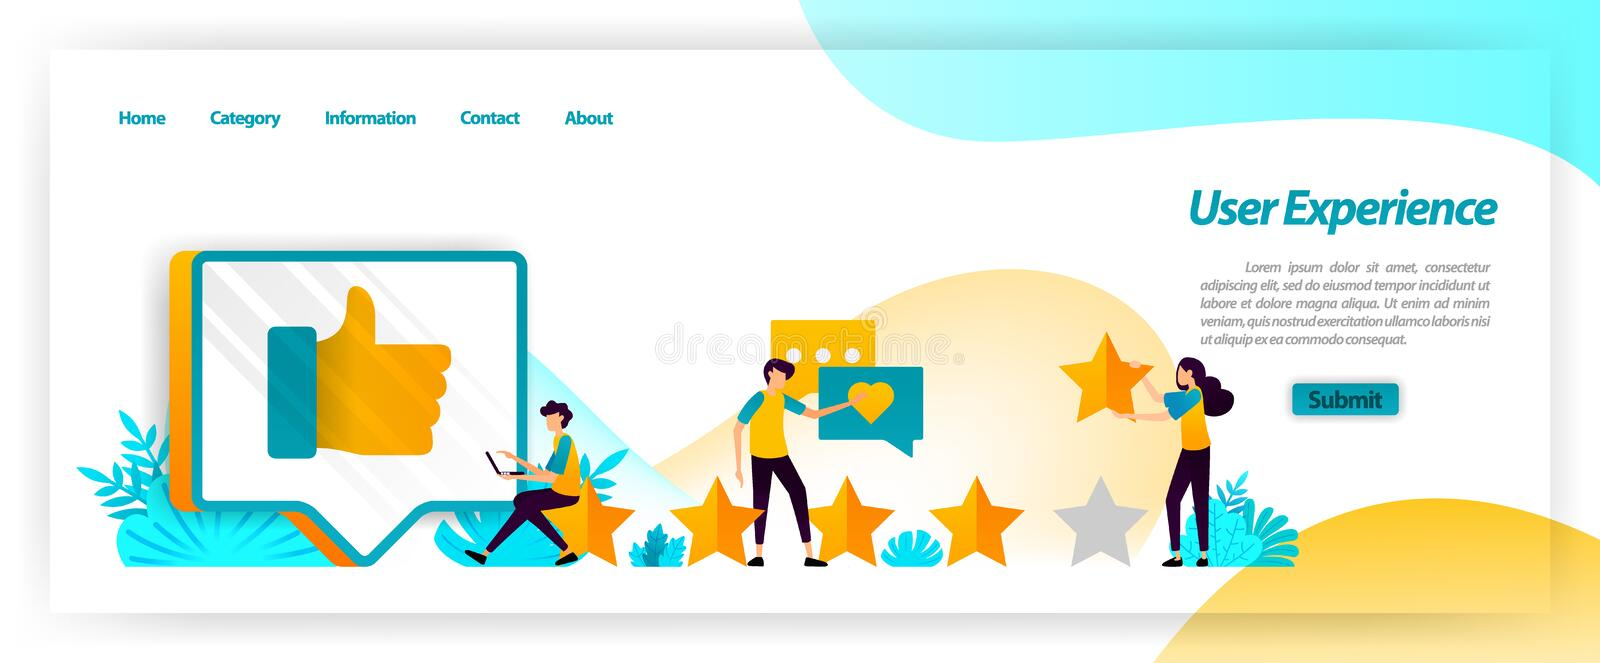 User experience including comments, ratings and reviews is feedback in managing customer satisfaction when using services. vector. Illustration concept for vector illustration